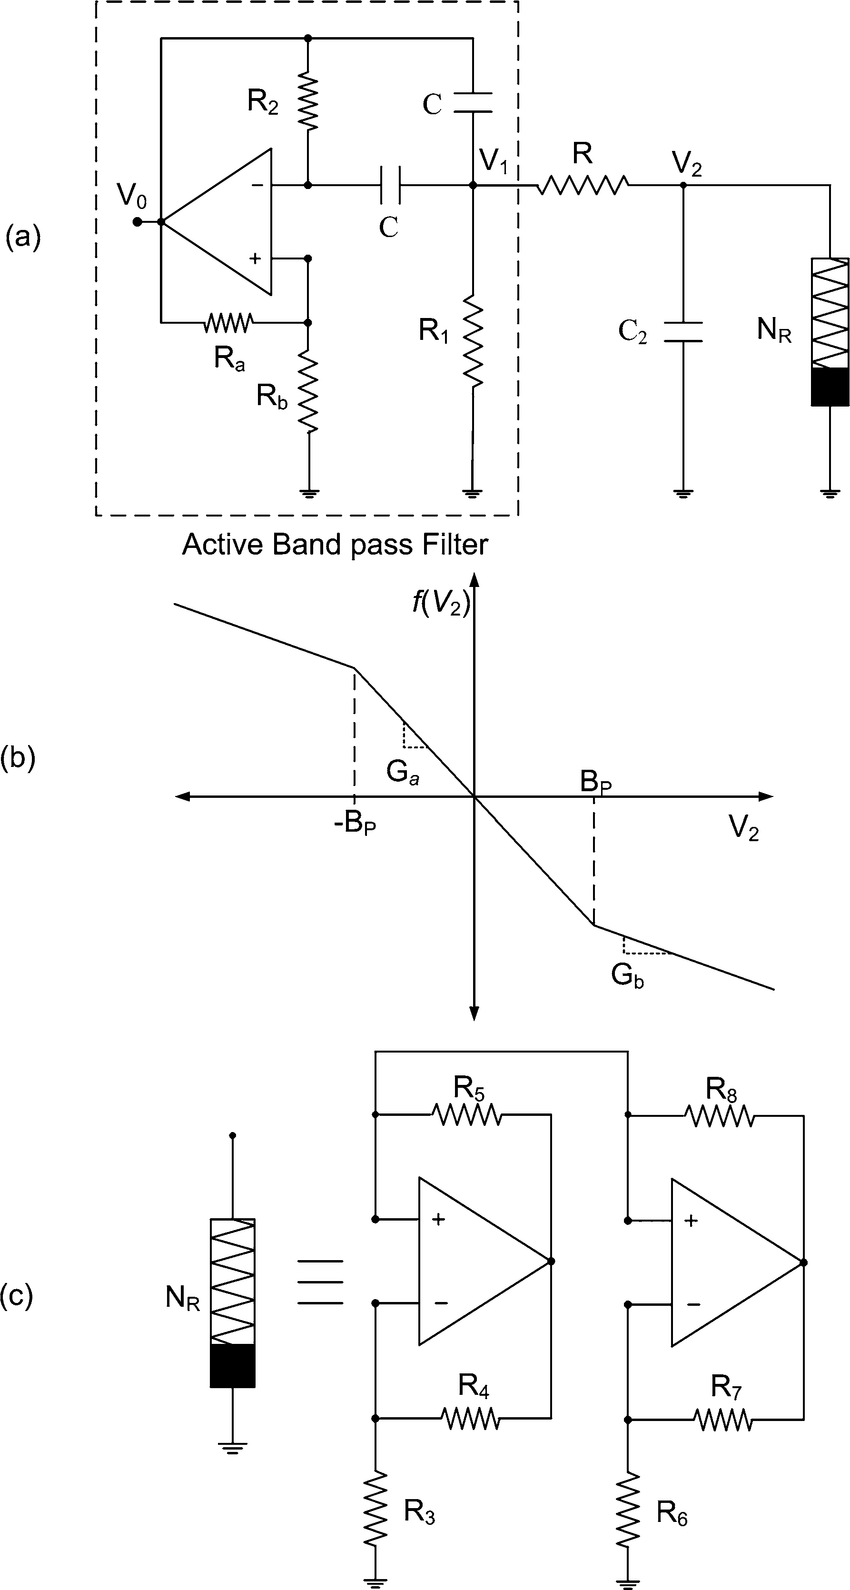 hight resolution of  a active band pass filter based chua s circuit b characteristics of